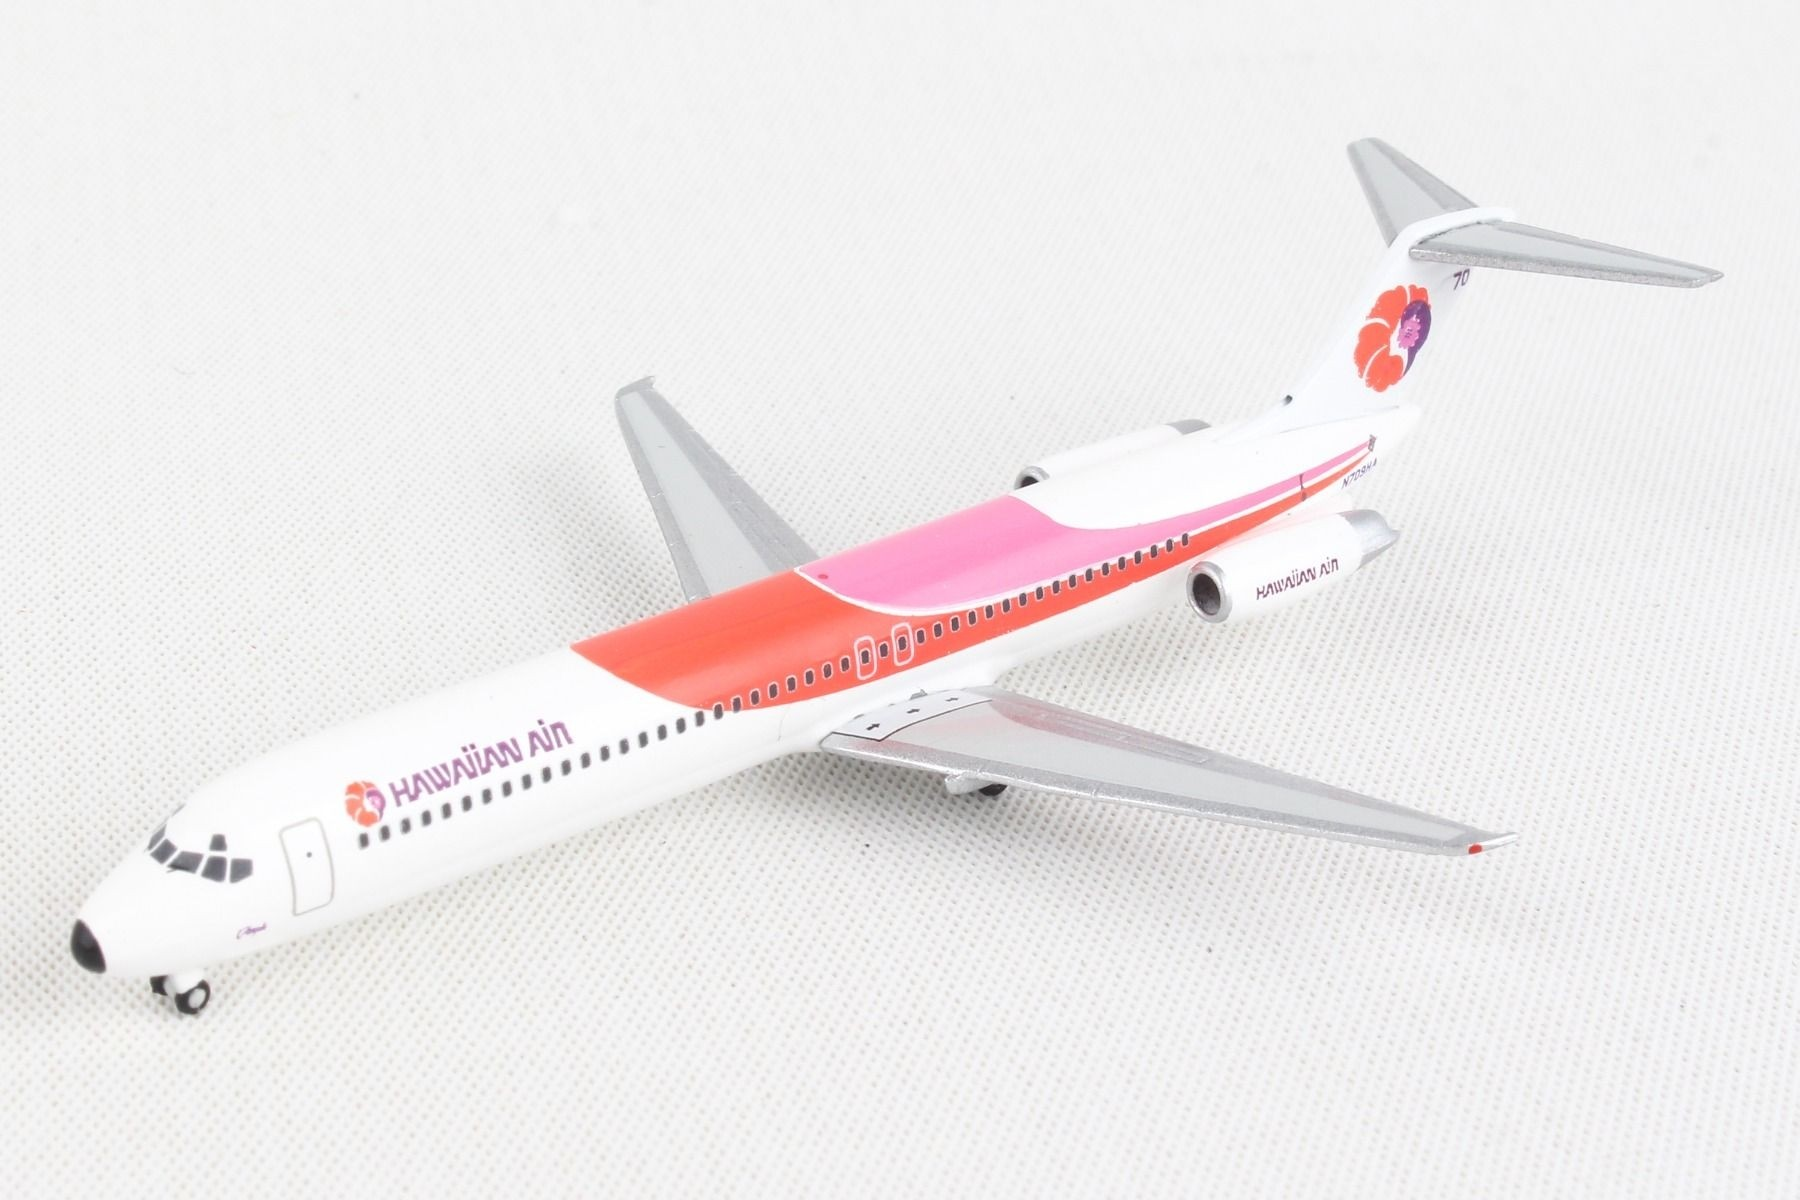 Herpa Wings 1:500 dc-9-50 Hawaiian air 533591